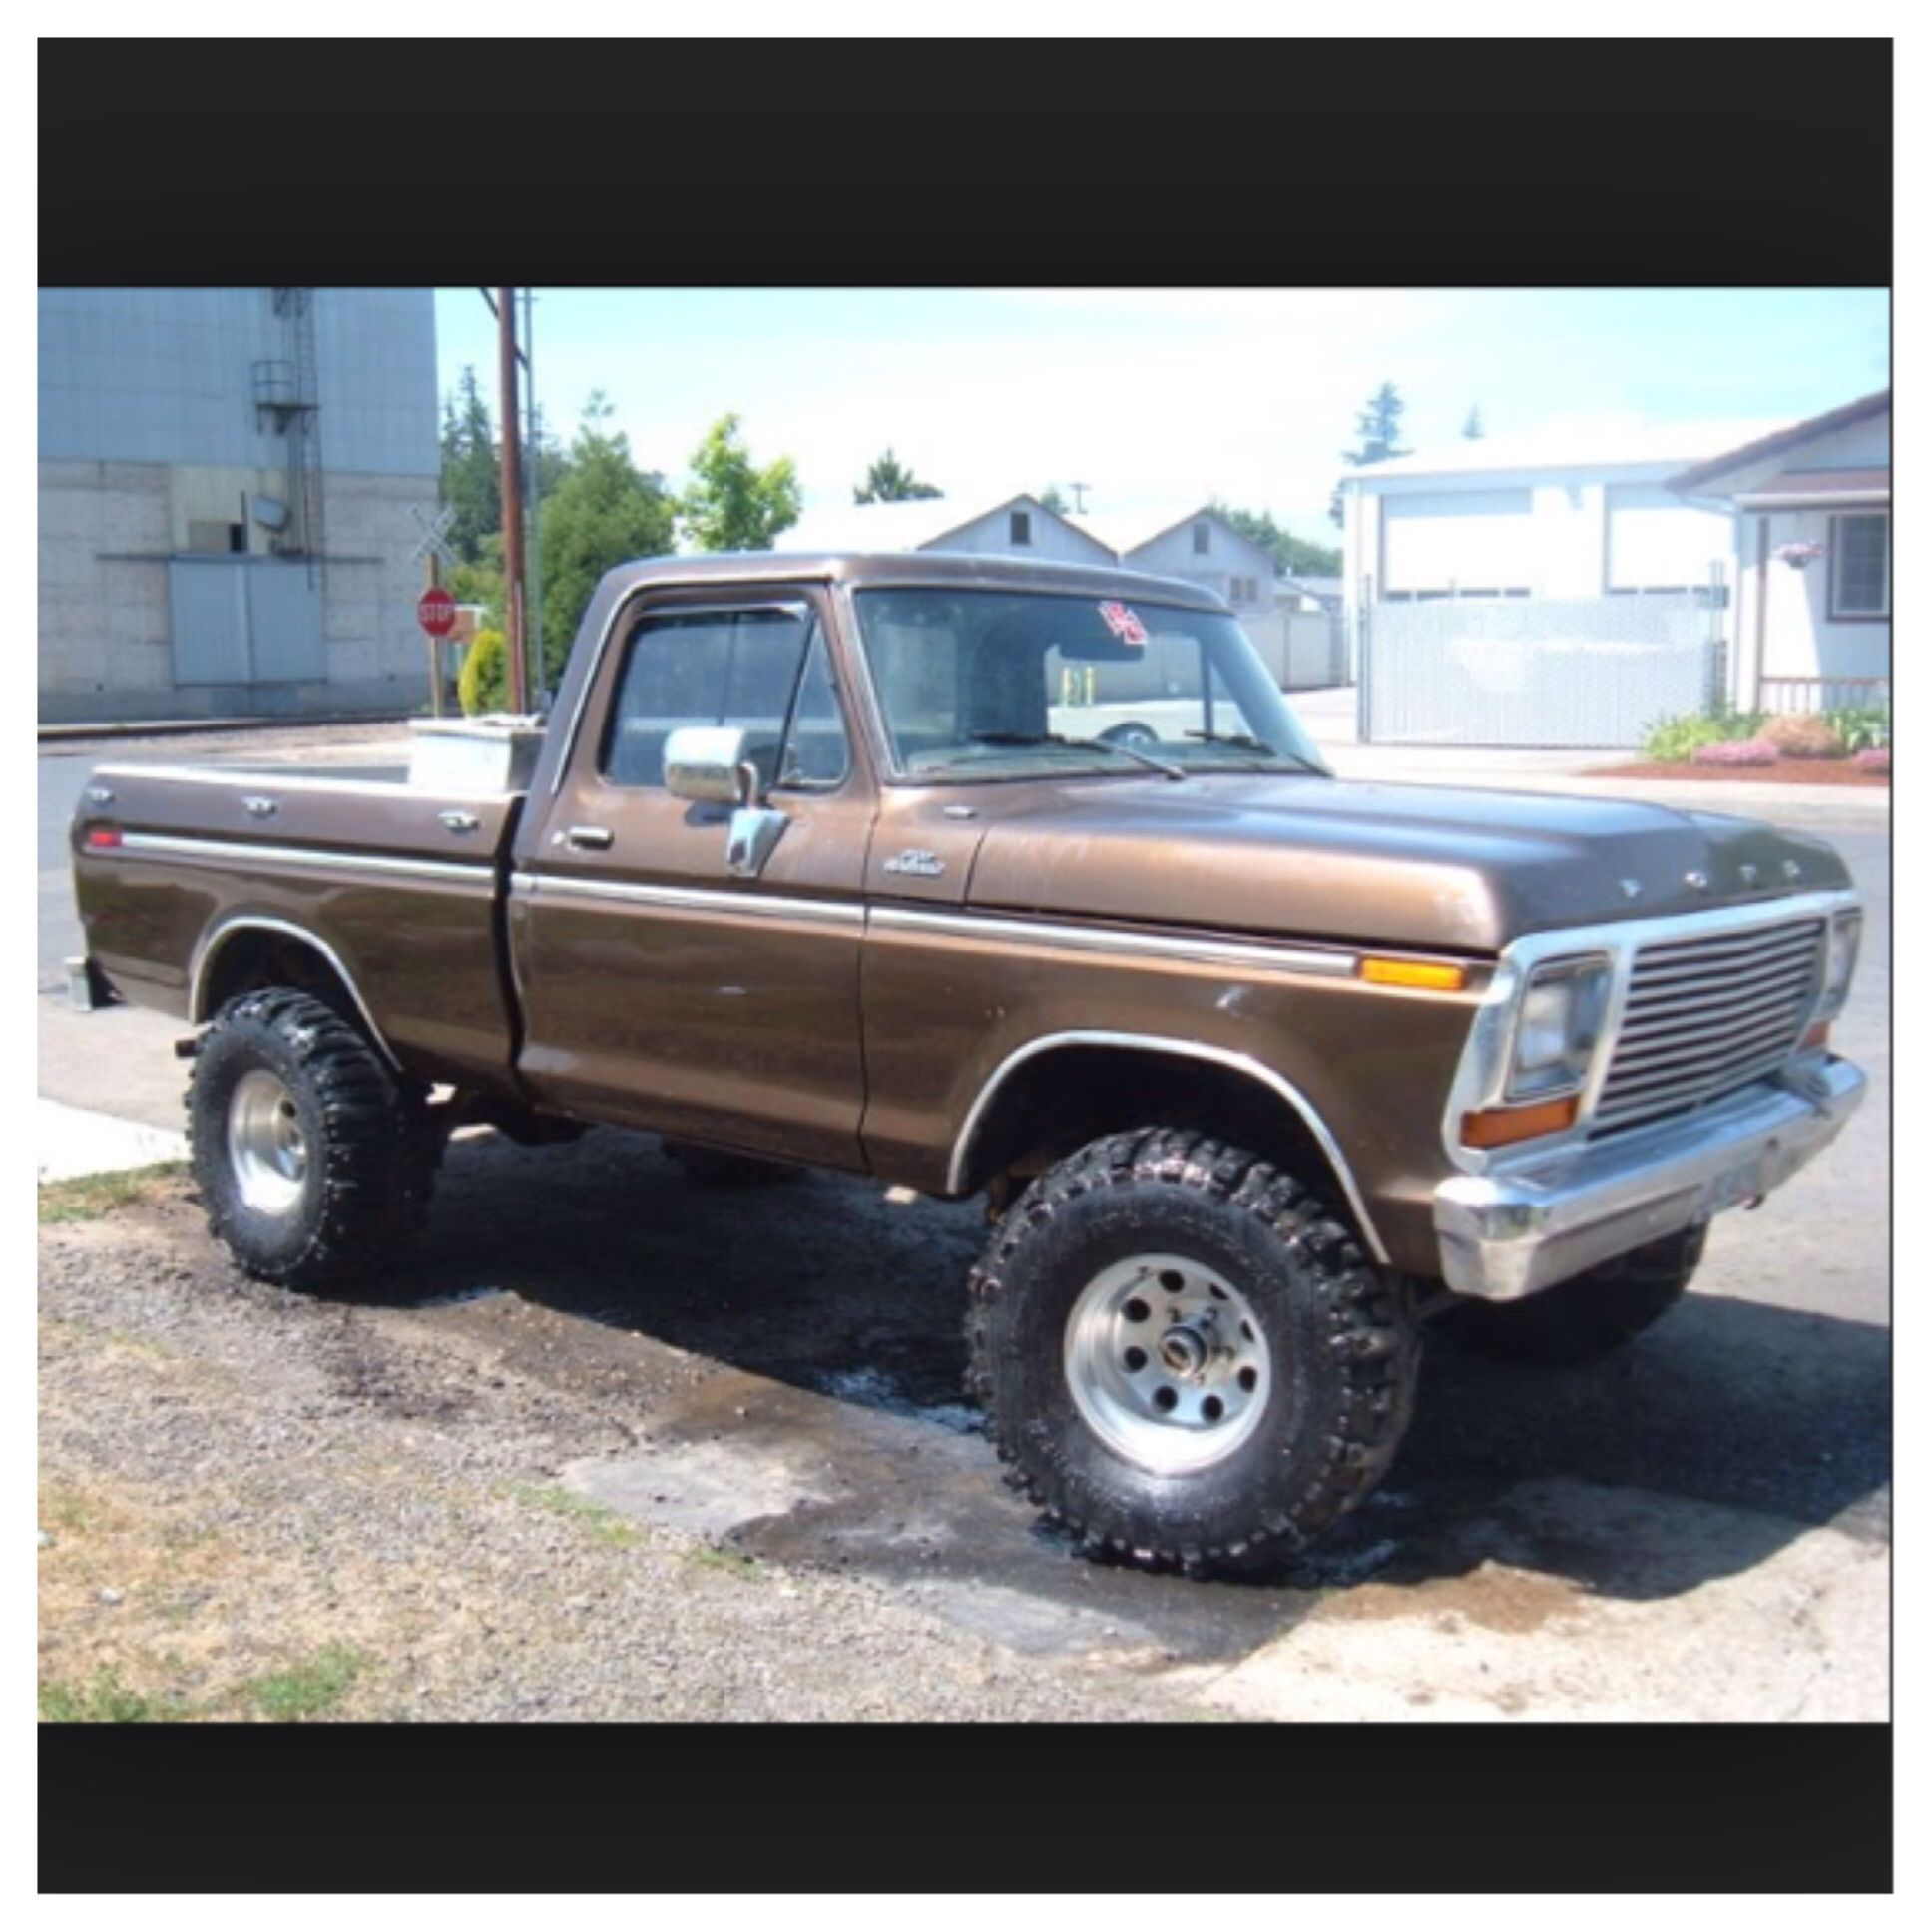 Home by year 1979 cars 1979 trucks car pictures - 1979 With A Lift Yahoo Image Search Results